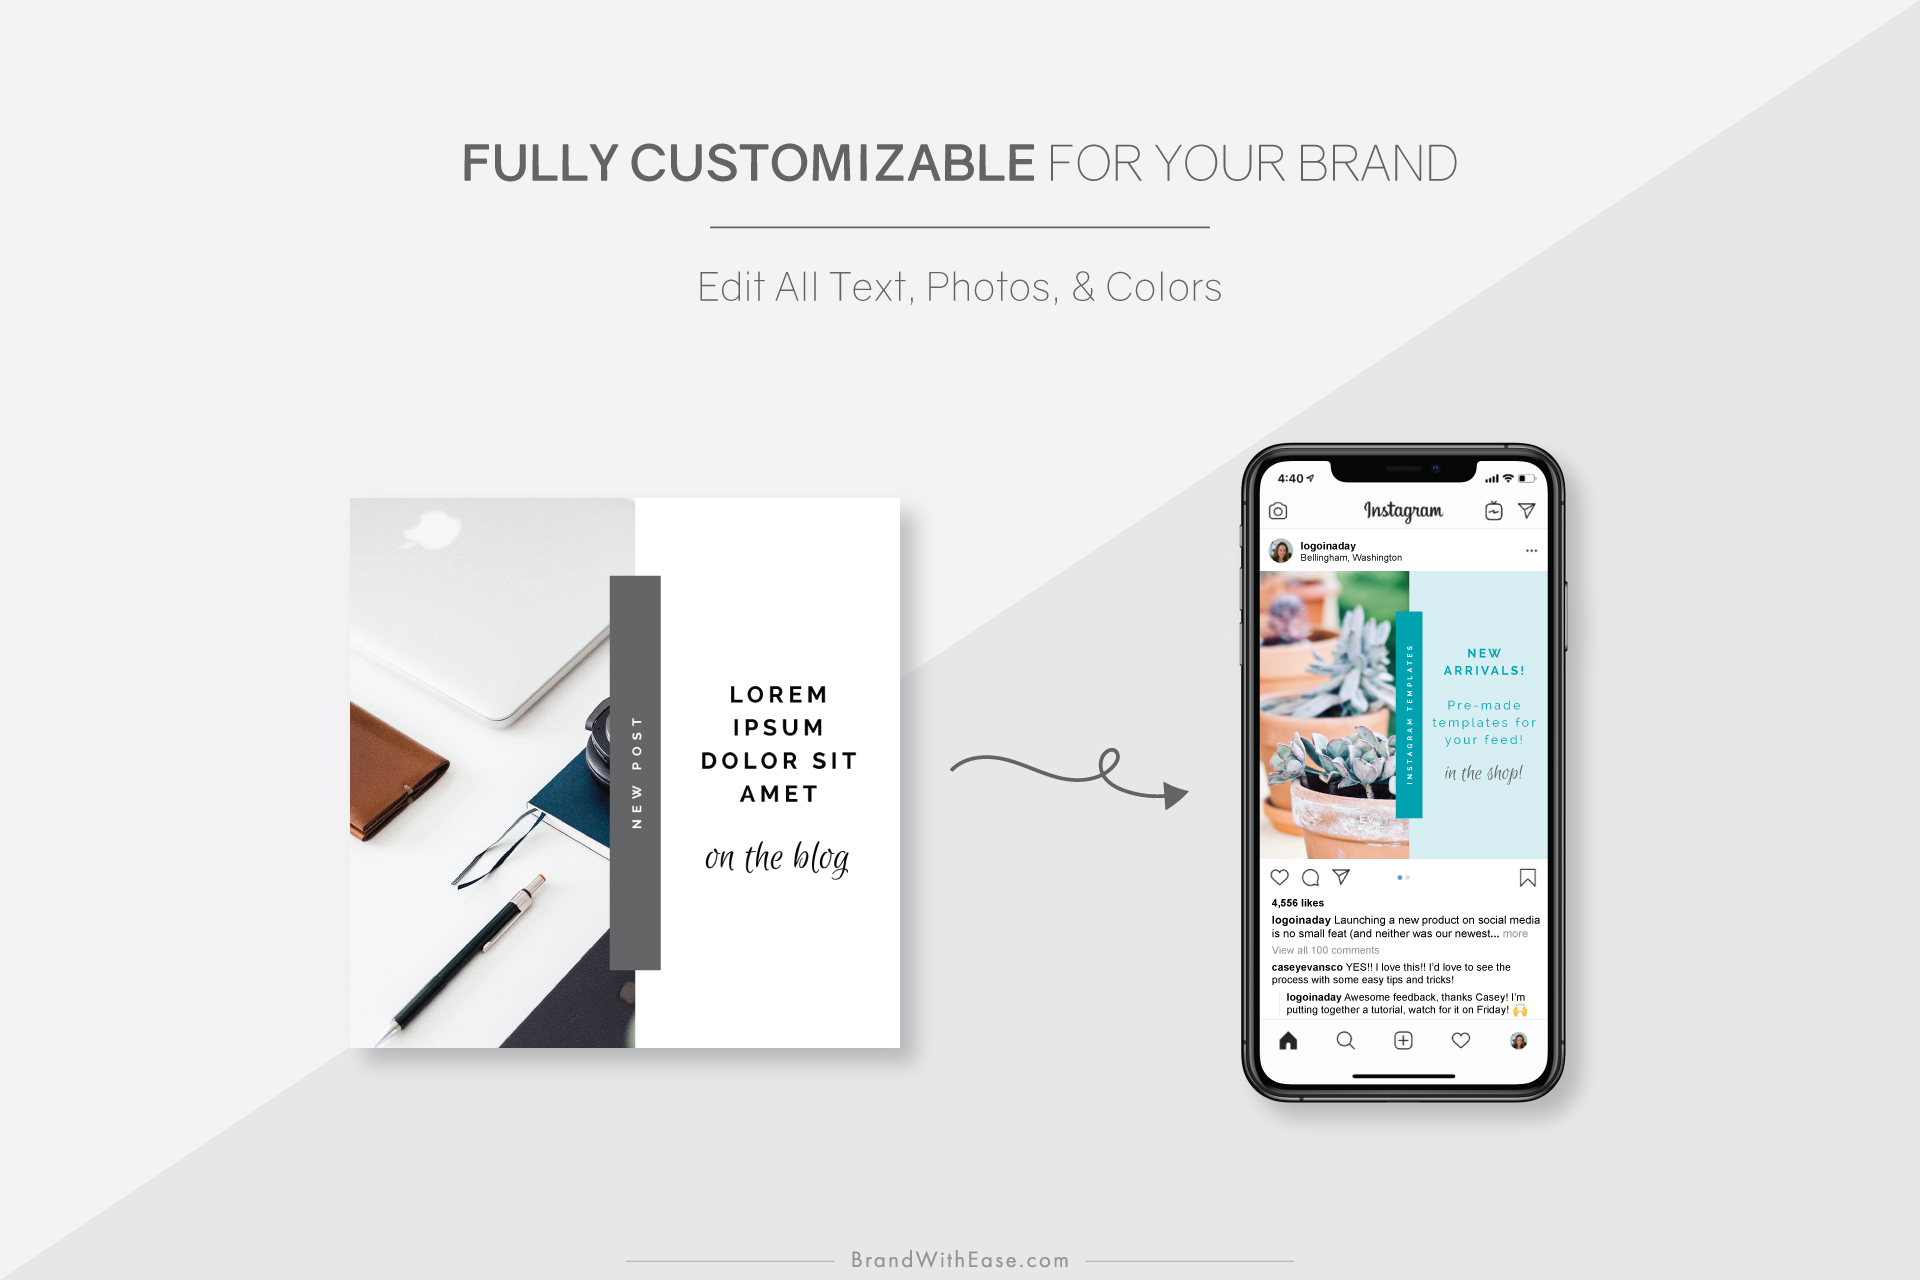 Brand-With-Ease-Instagram-Free-8-Pack-Customizable.jpg